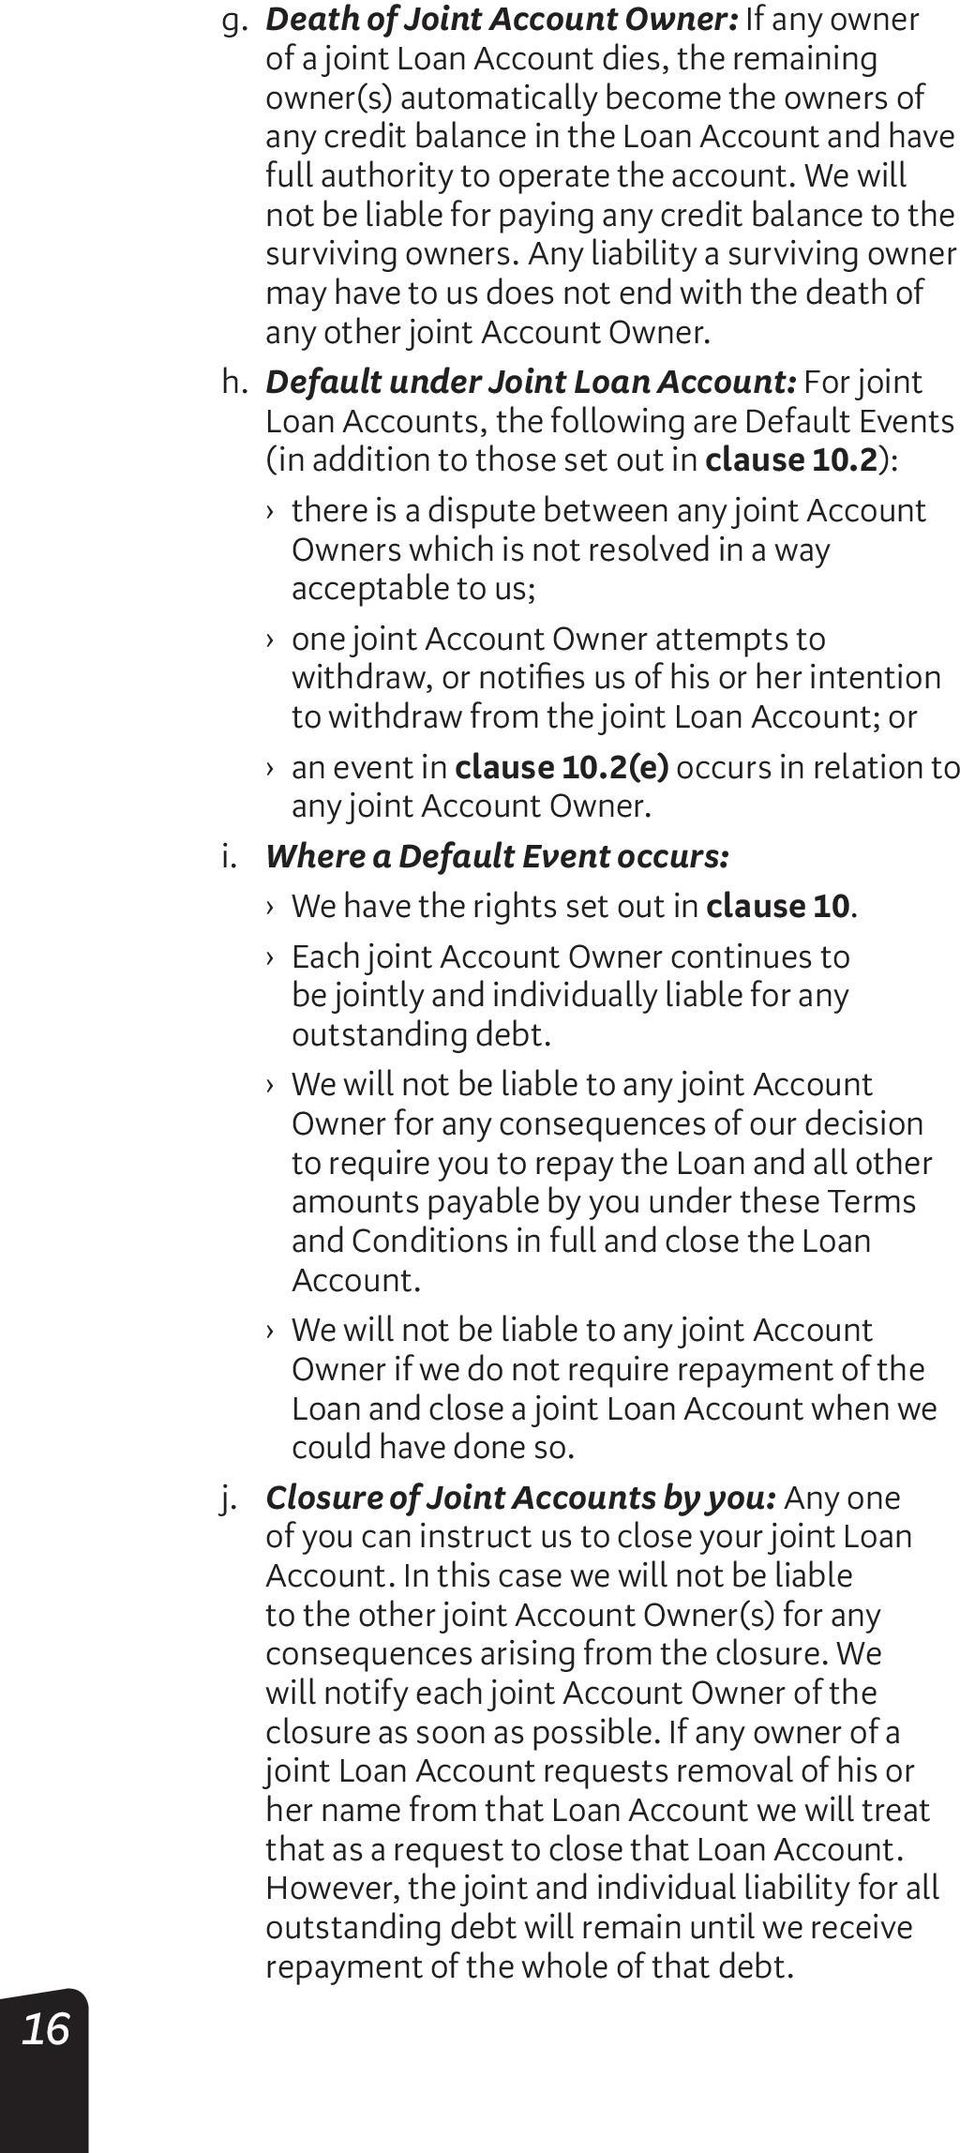 Any liability a surviving owner may have to us does not end with the death of any other joint Account Owner. h. Default under Joint Loan Account: For joint Loan Accounts, the following are Default Events (in addition to those set out in clause 10.